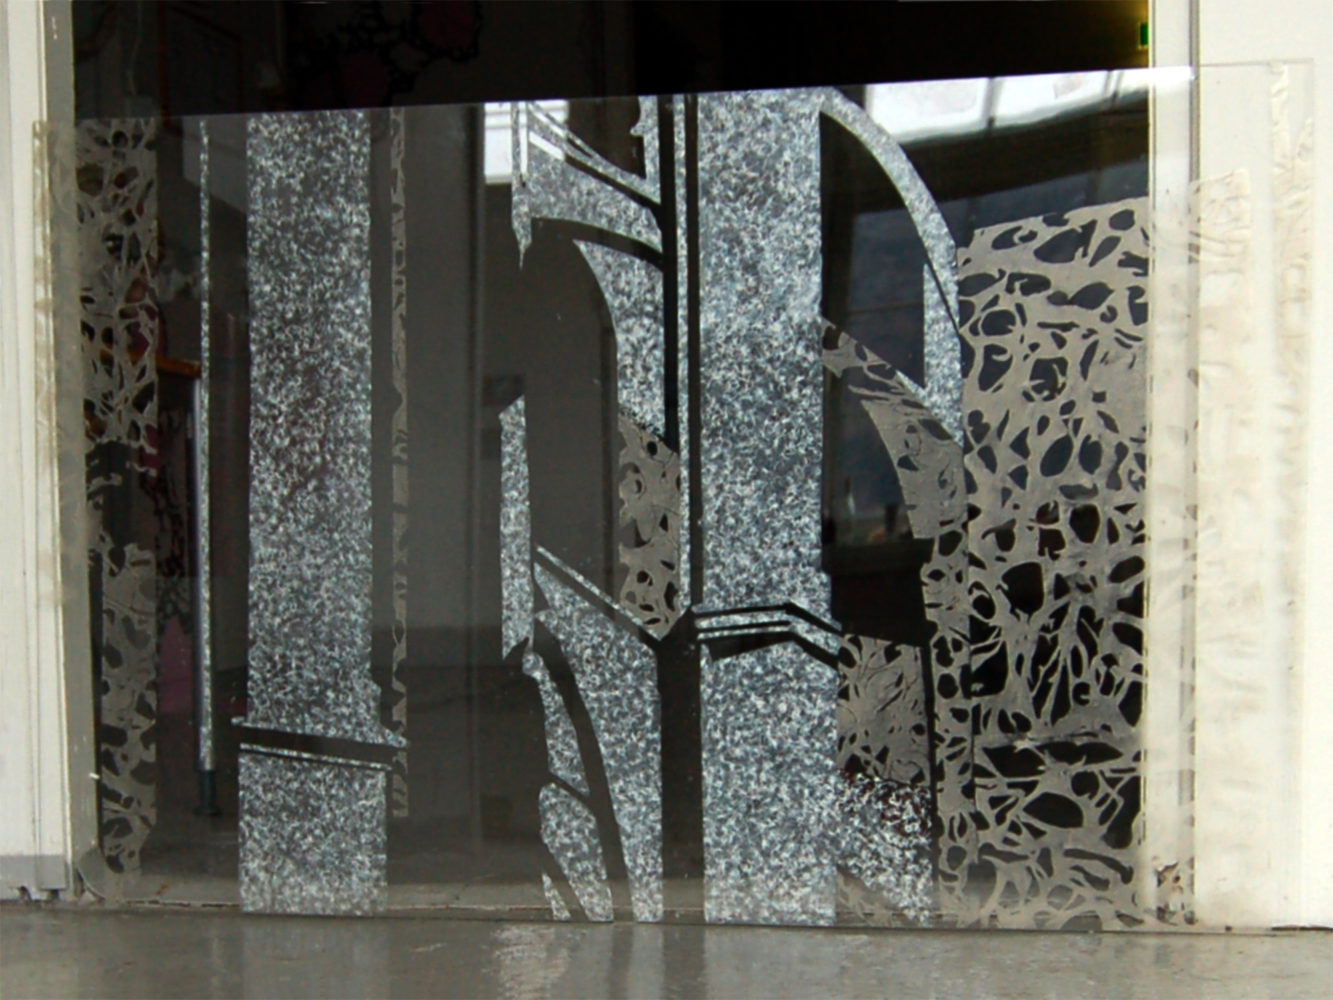 Right to be Sure